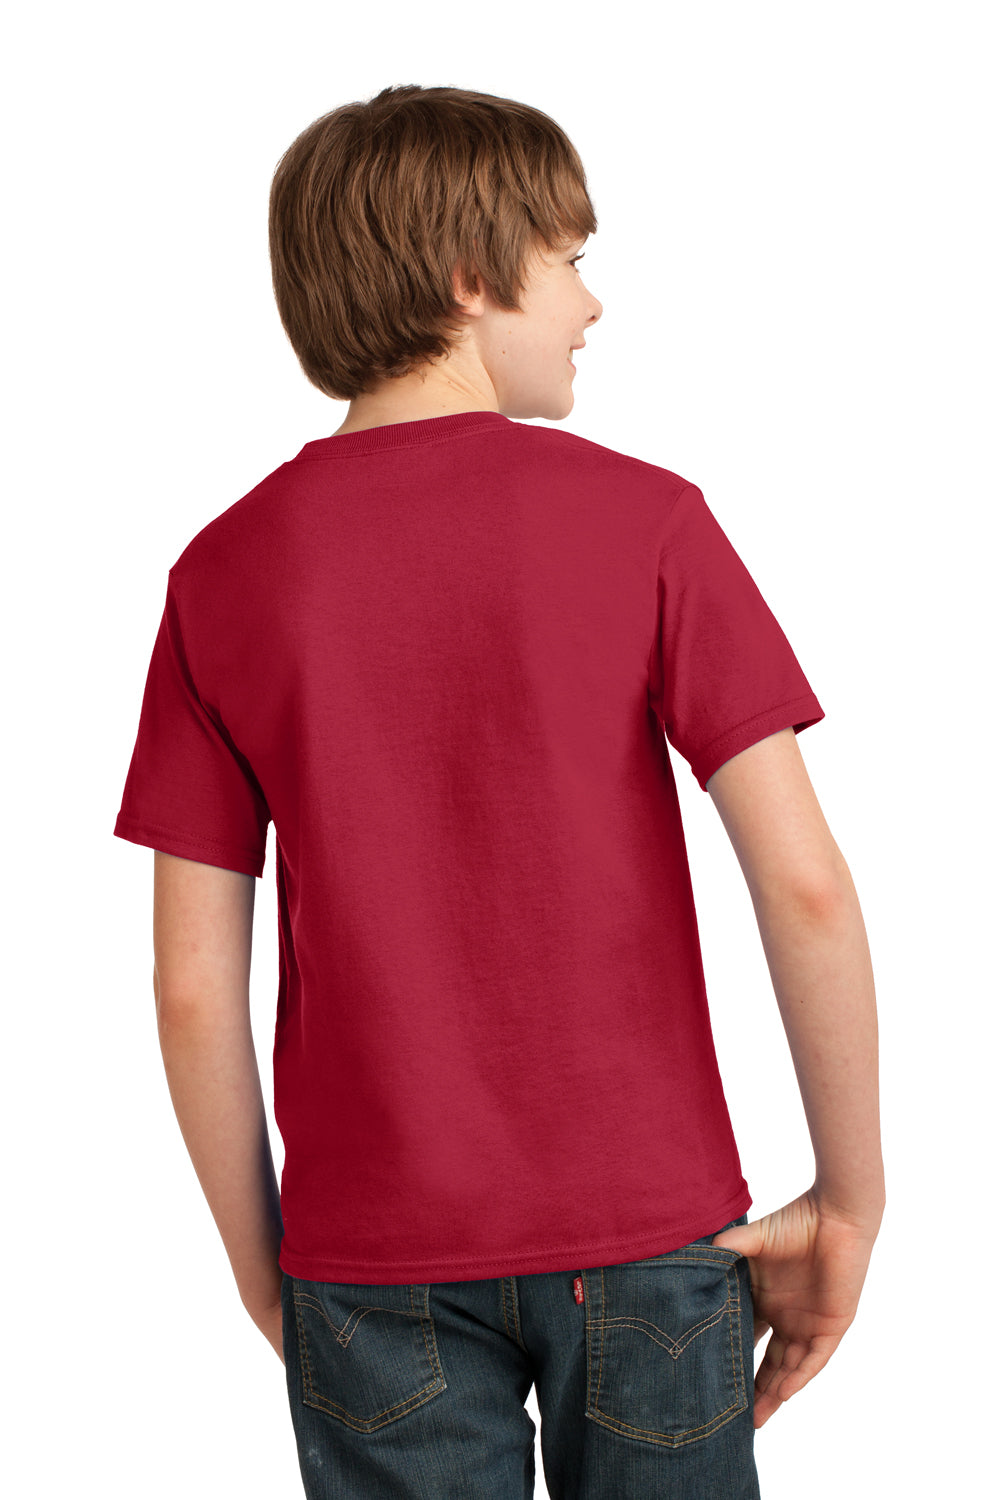 Port & Company PC61Y Youth Essential Short Sleeve Crewneck T-Shirt Red Back